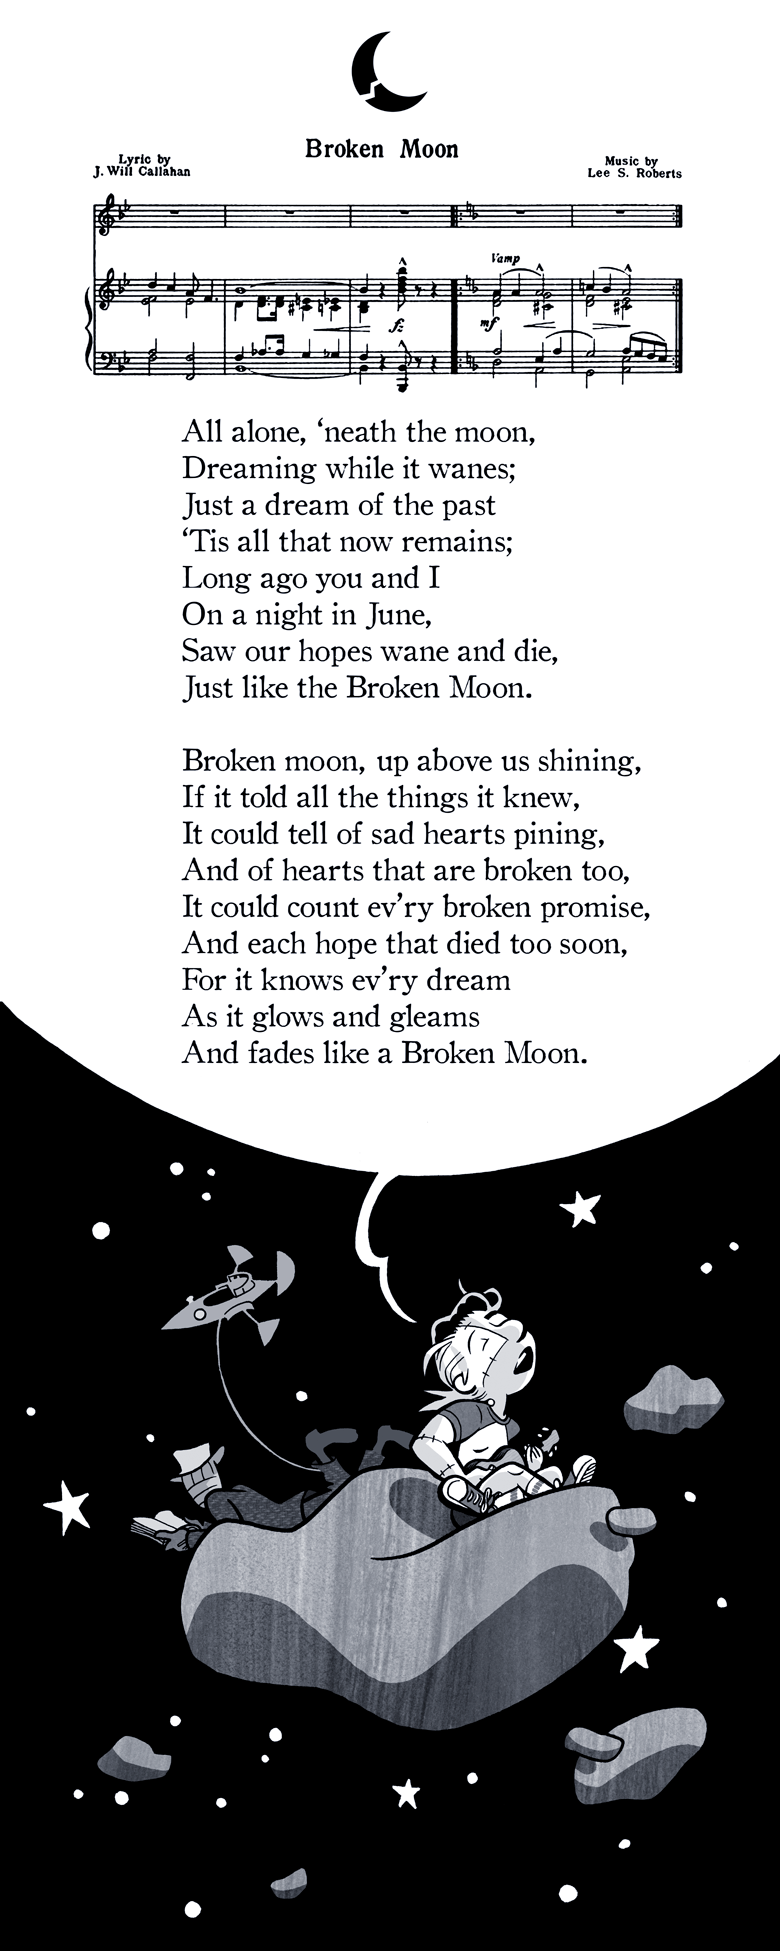 """Broken Moon"" Lyrics by J. Will Callahan, Music by Lee S. Roberts"